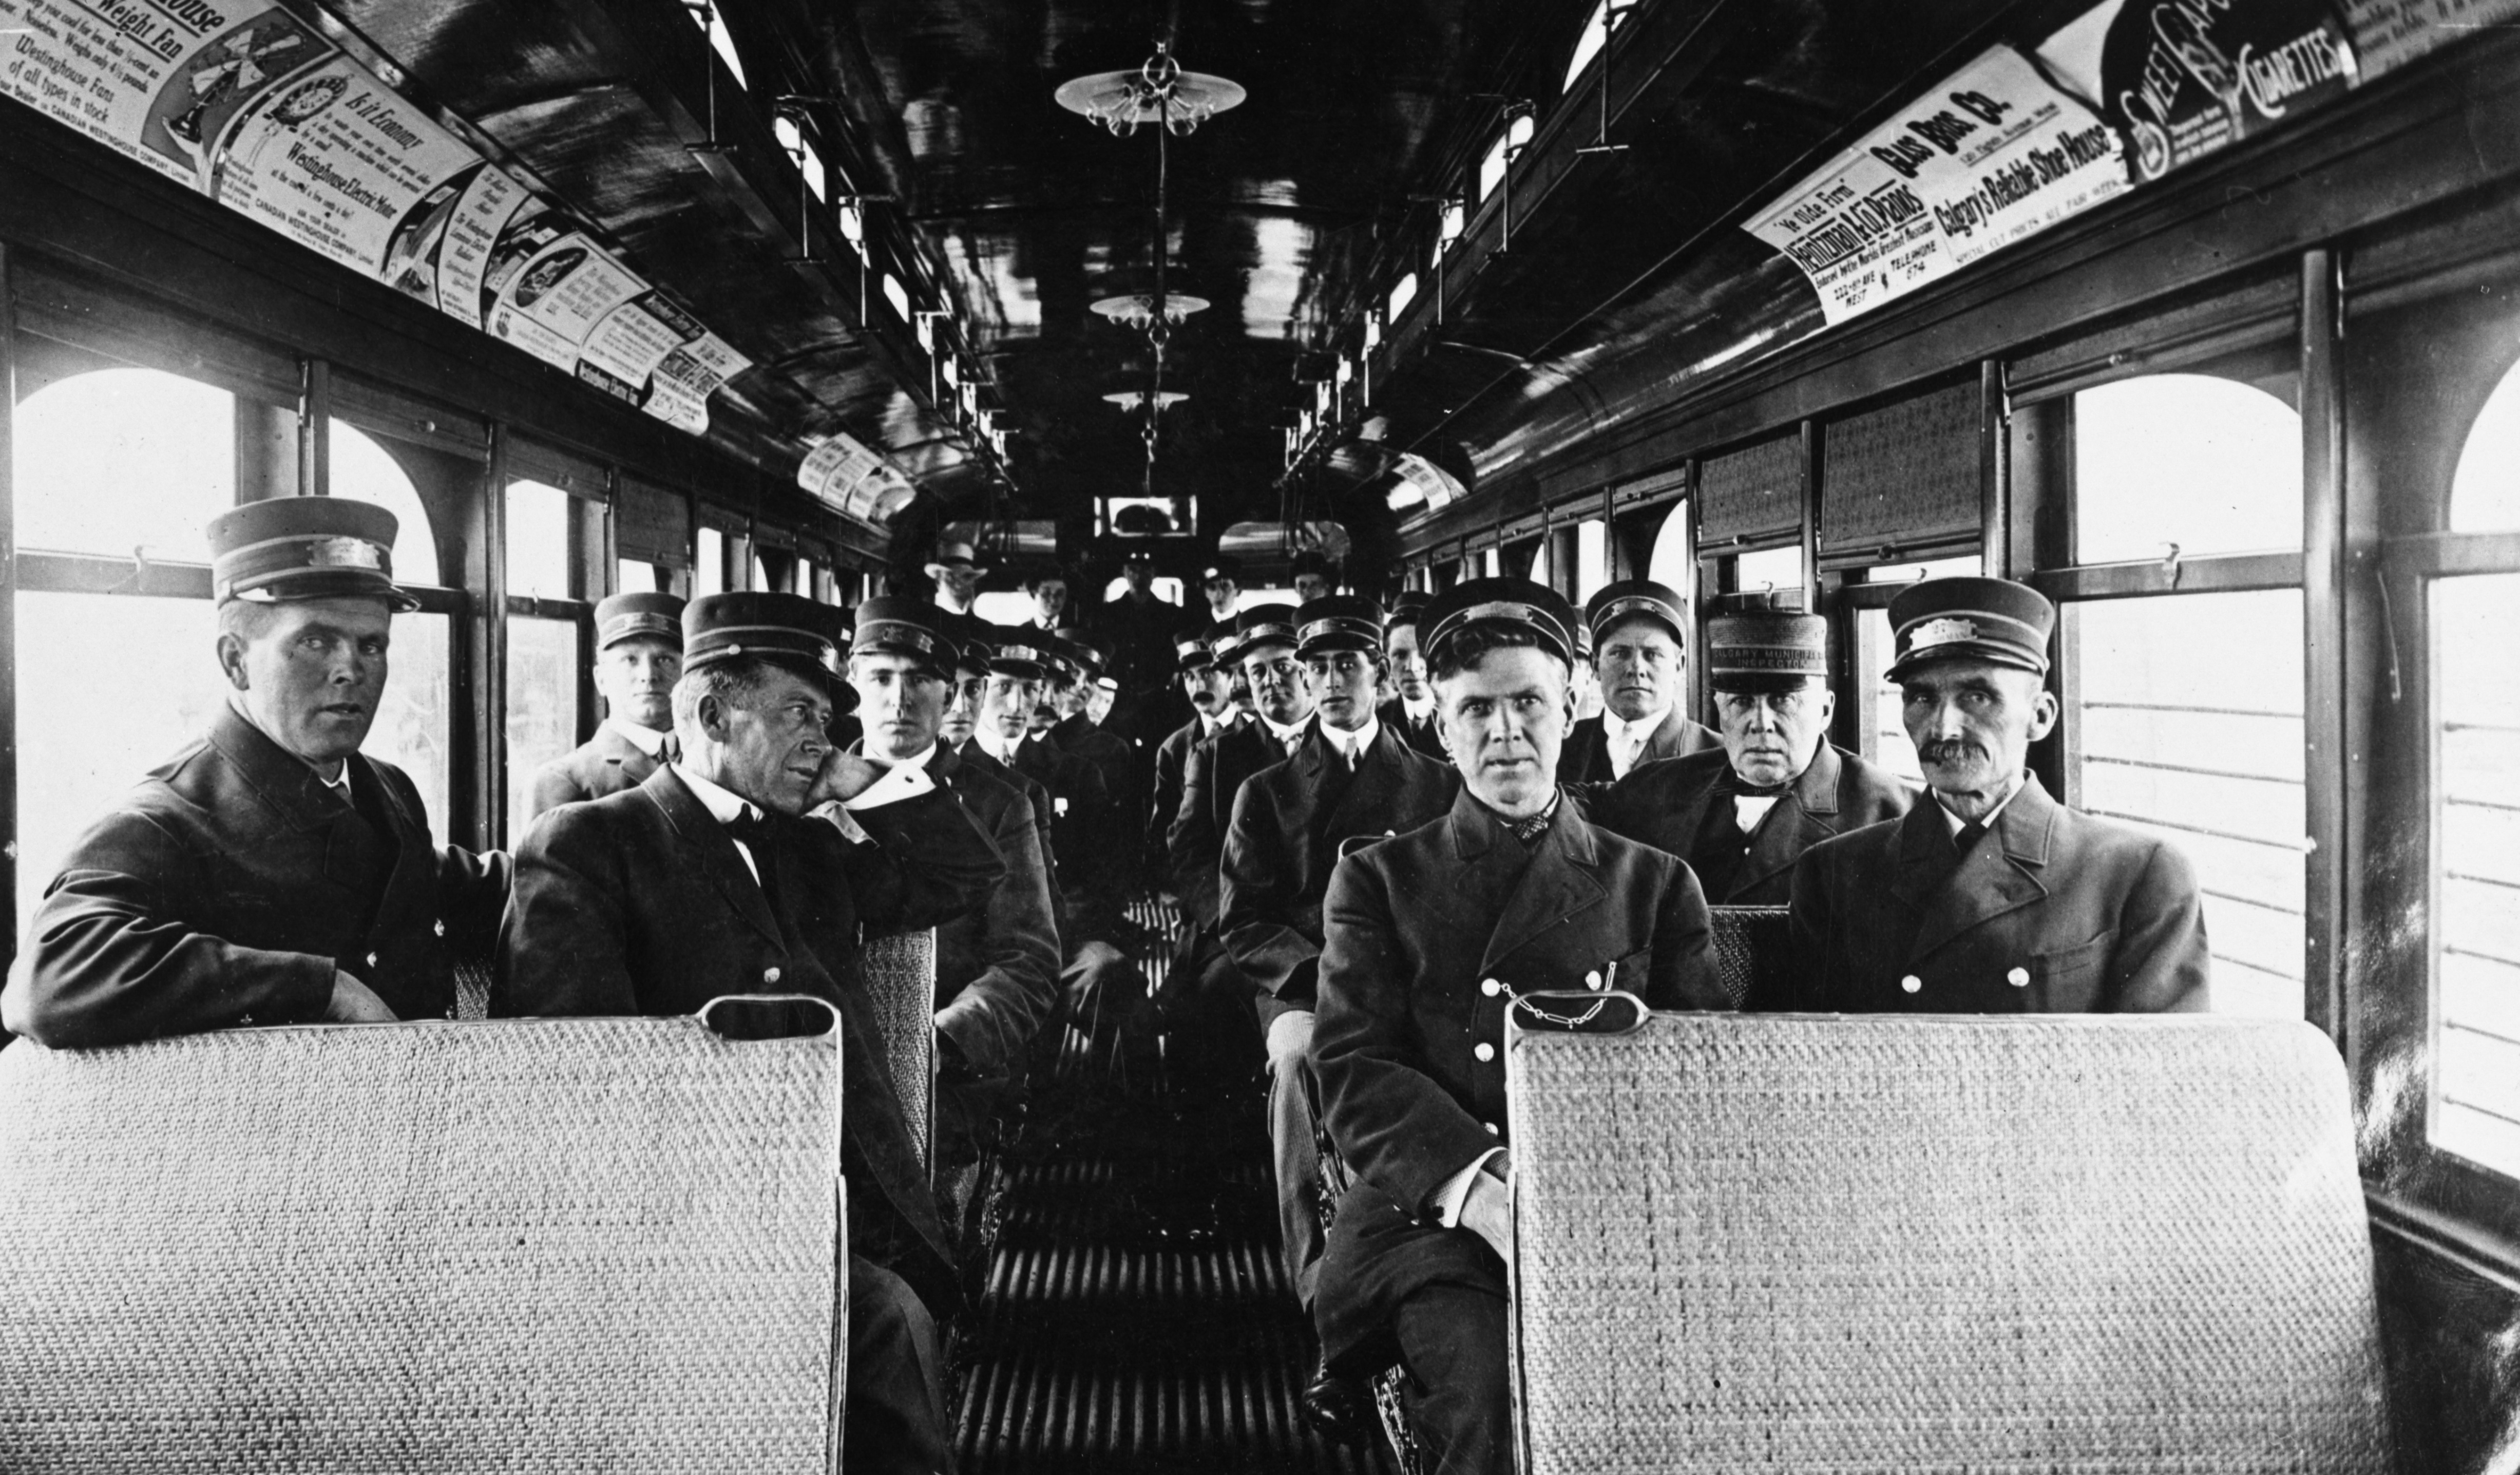 Calgary Electric Railway employees in streetcar, Calgary, Alberta, circa 1911-1915